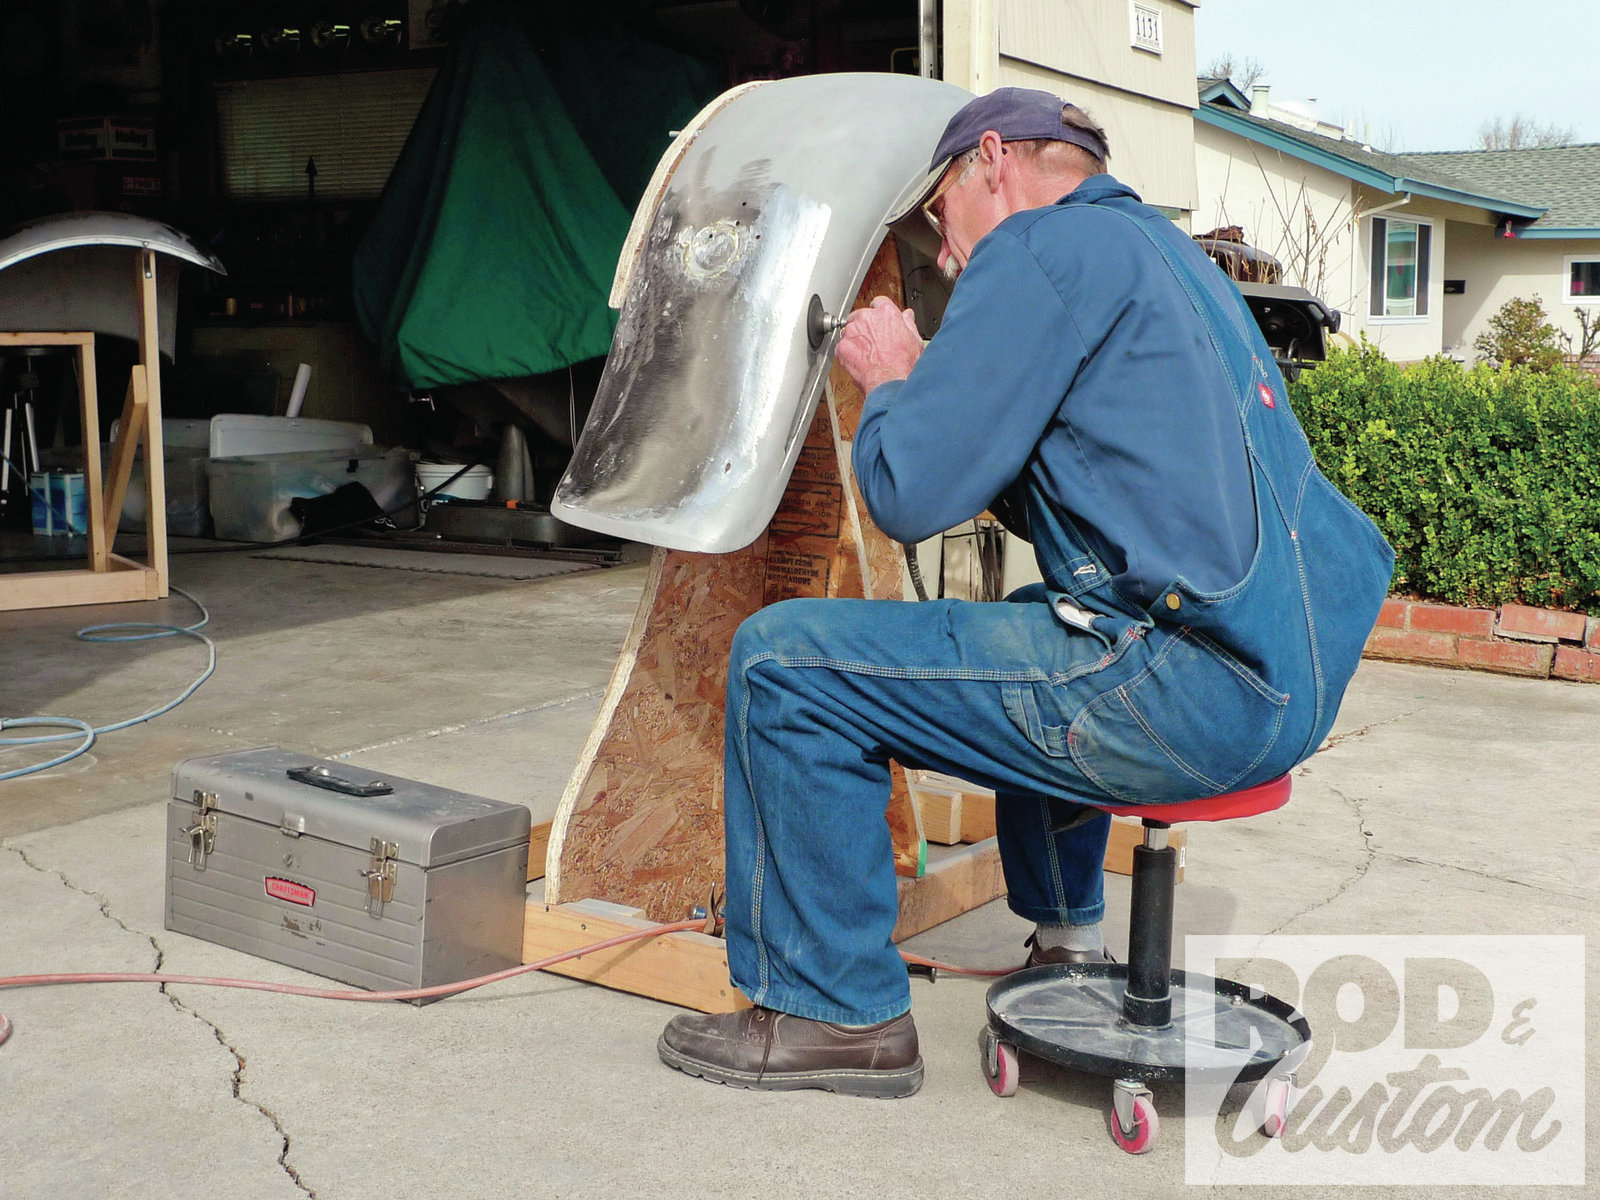 8. By the second day, our metal-working chores were close to done. Here, before filler work begins, Wright makes a quick pass around the fender beads with a Harbor Freight Central Pneumatic angle die grinder. With a 3-inch, 3M Roloc disc attached, the crevice is cleaned quickly.